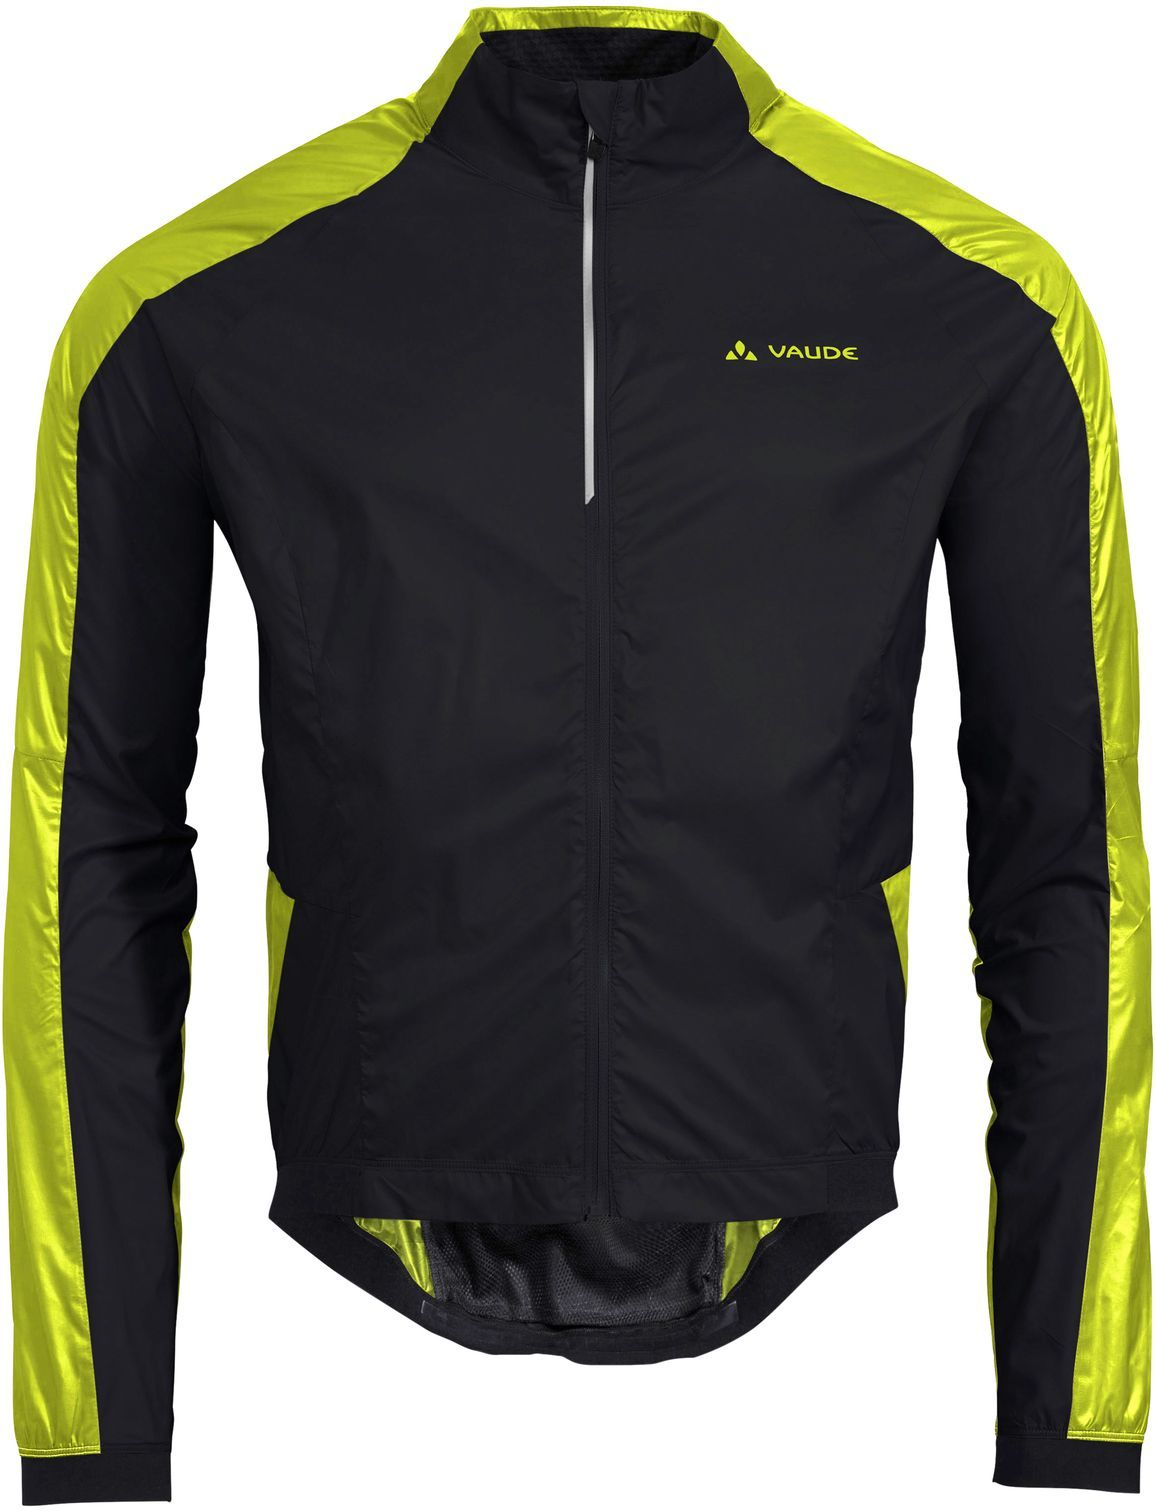 Vaude Men's Air Pro Jacket - black L